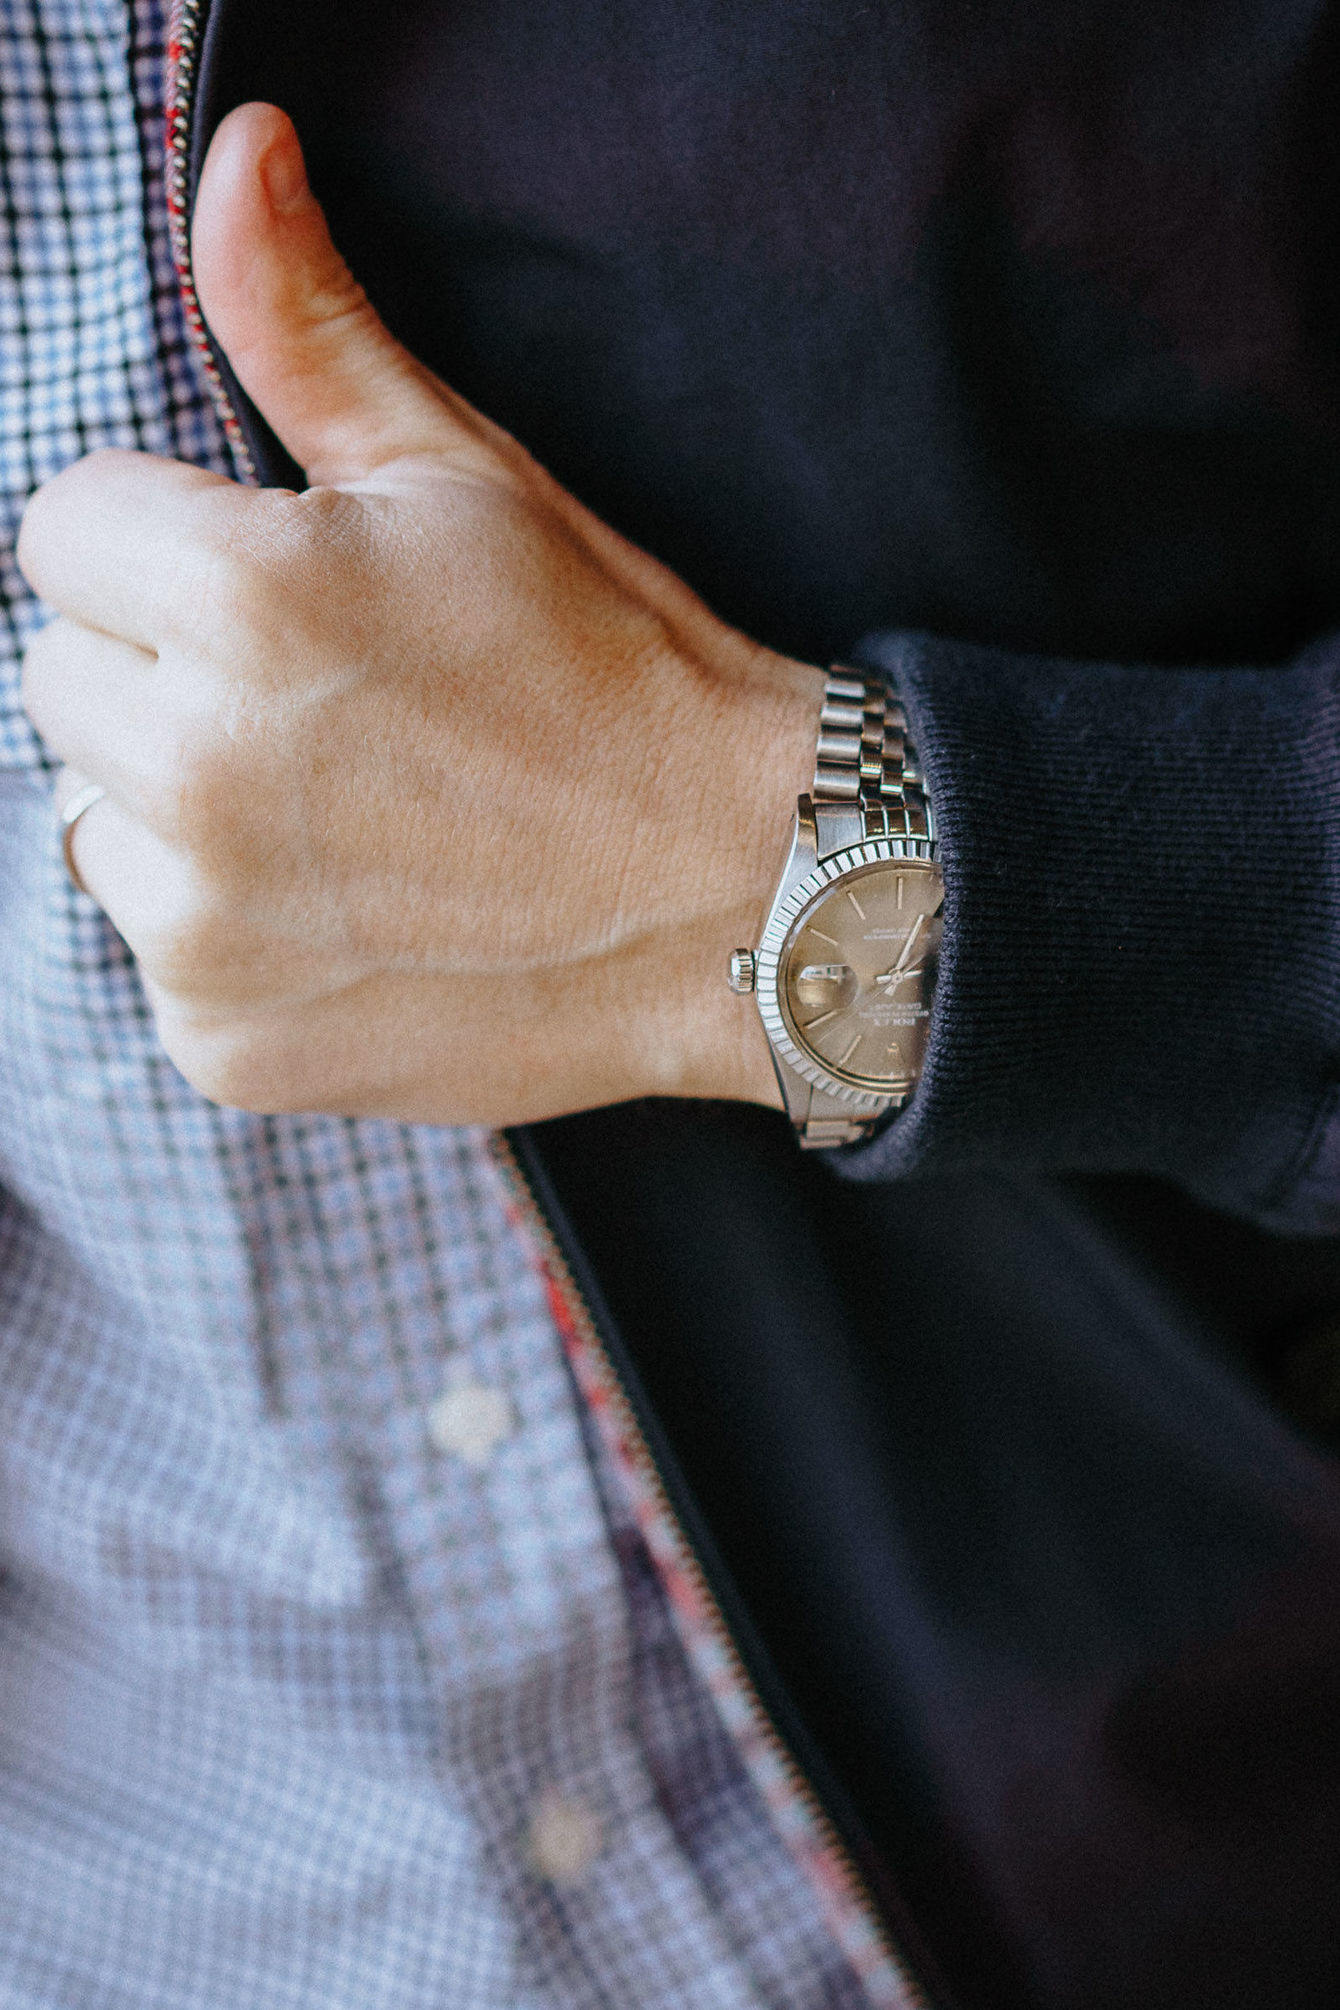 The Cheapest Rolex Watches (and Where to Buy Them)